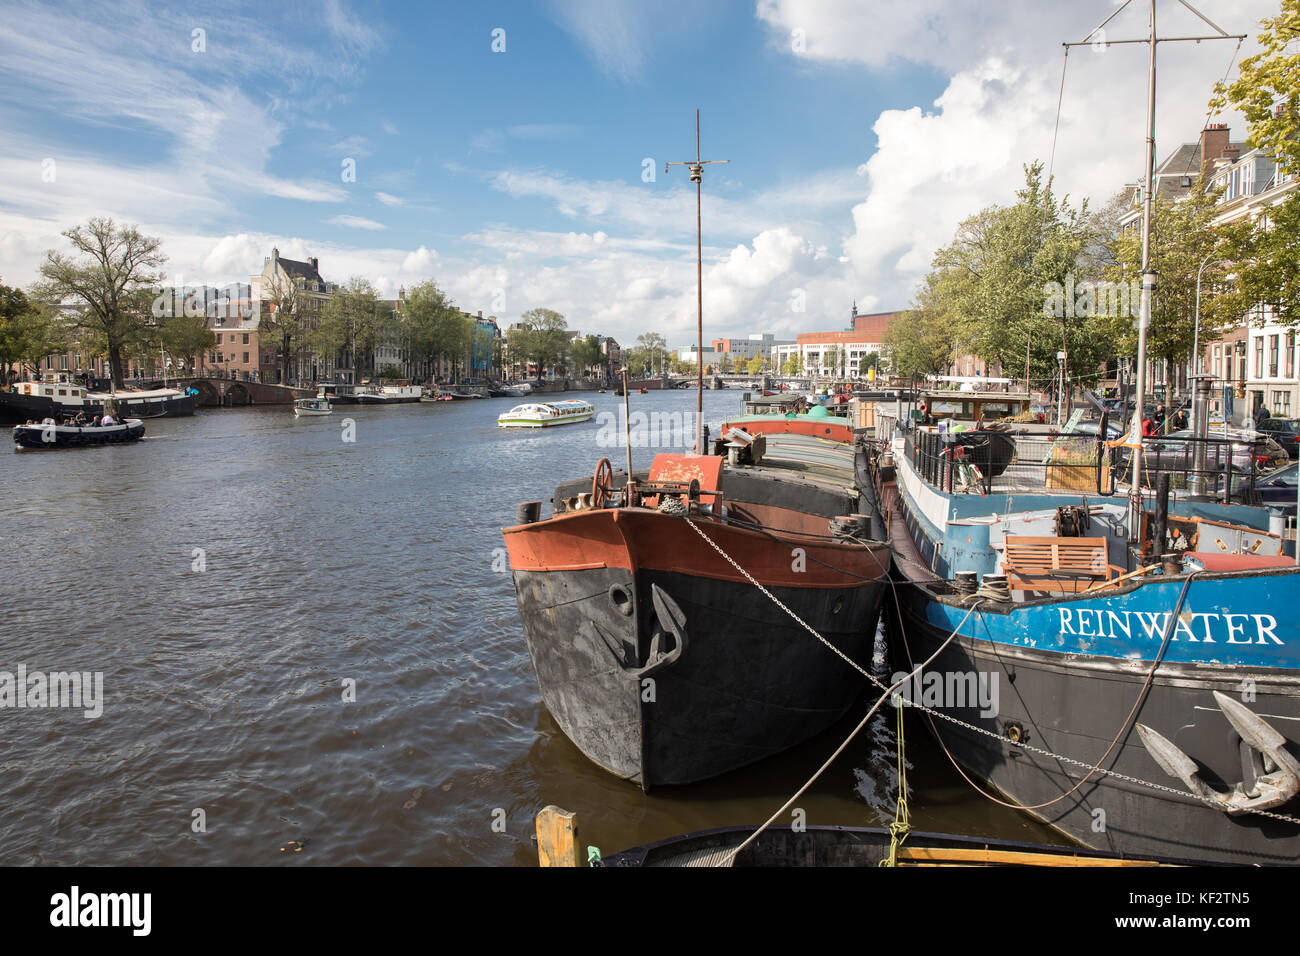 The canals of Amsterdam, Netherlands - Stock Image